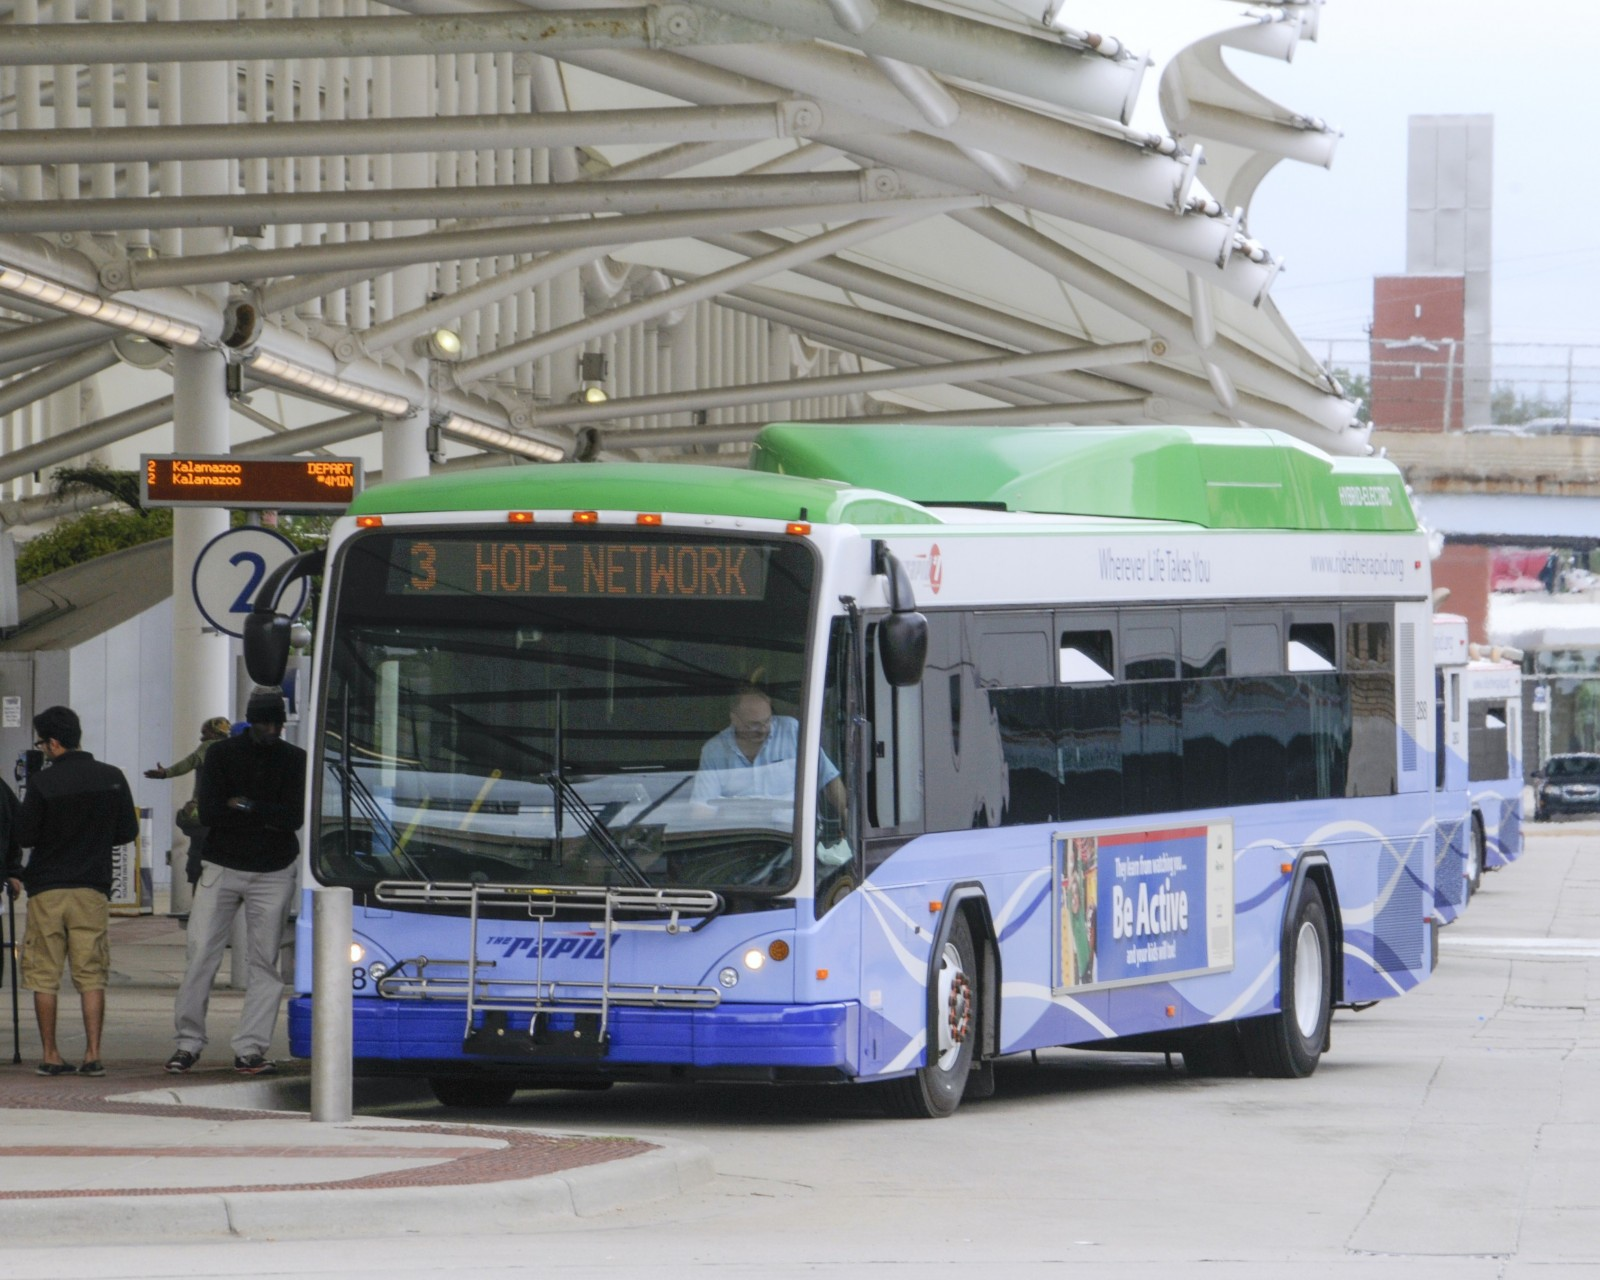 Riders of the Rapid will soon be paying more for a ride. Board members voted at their meeting on August 26, 2015 to increase  fares.